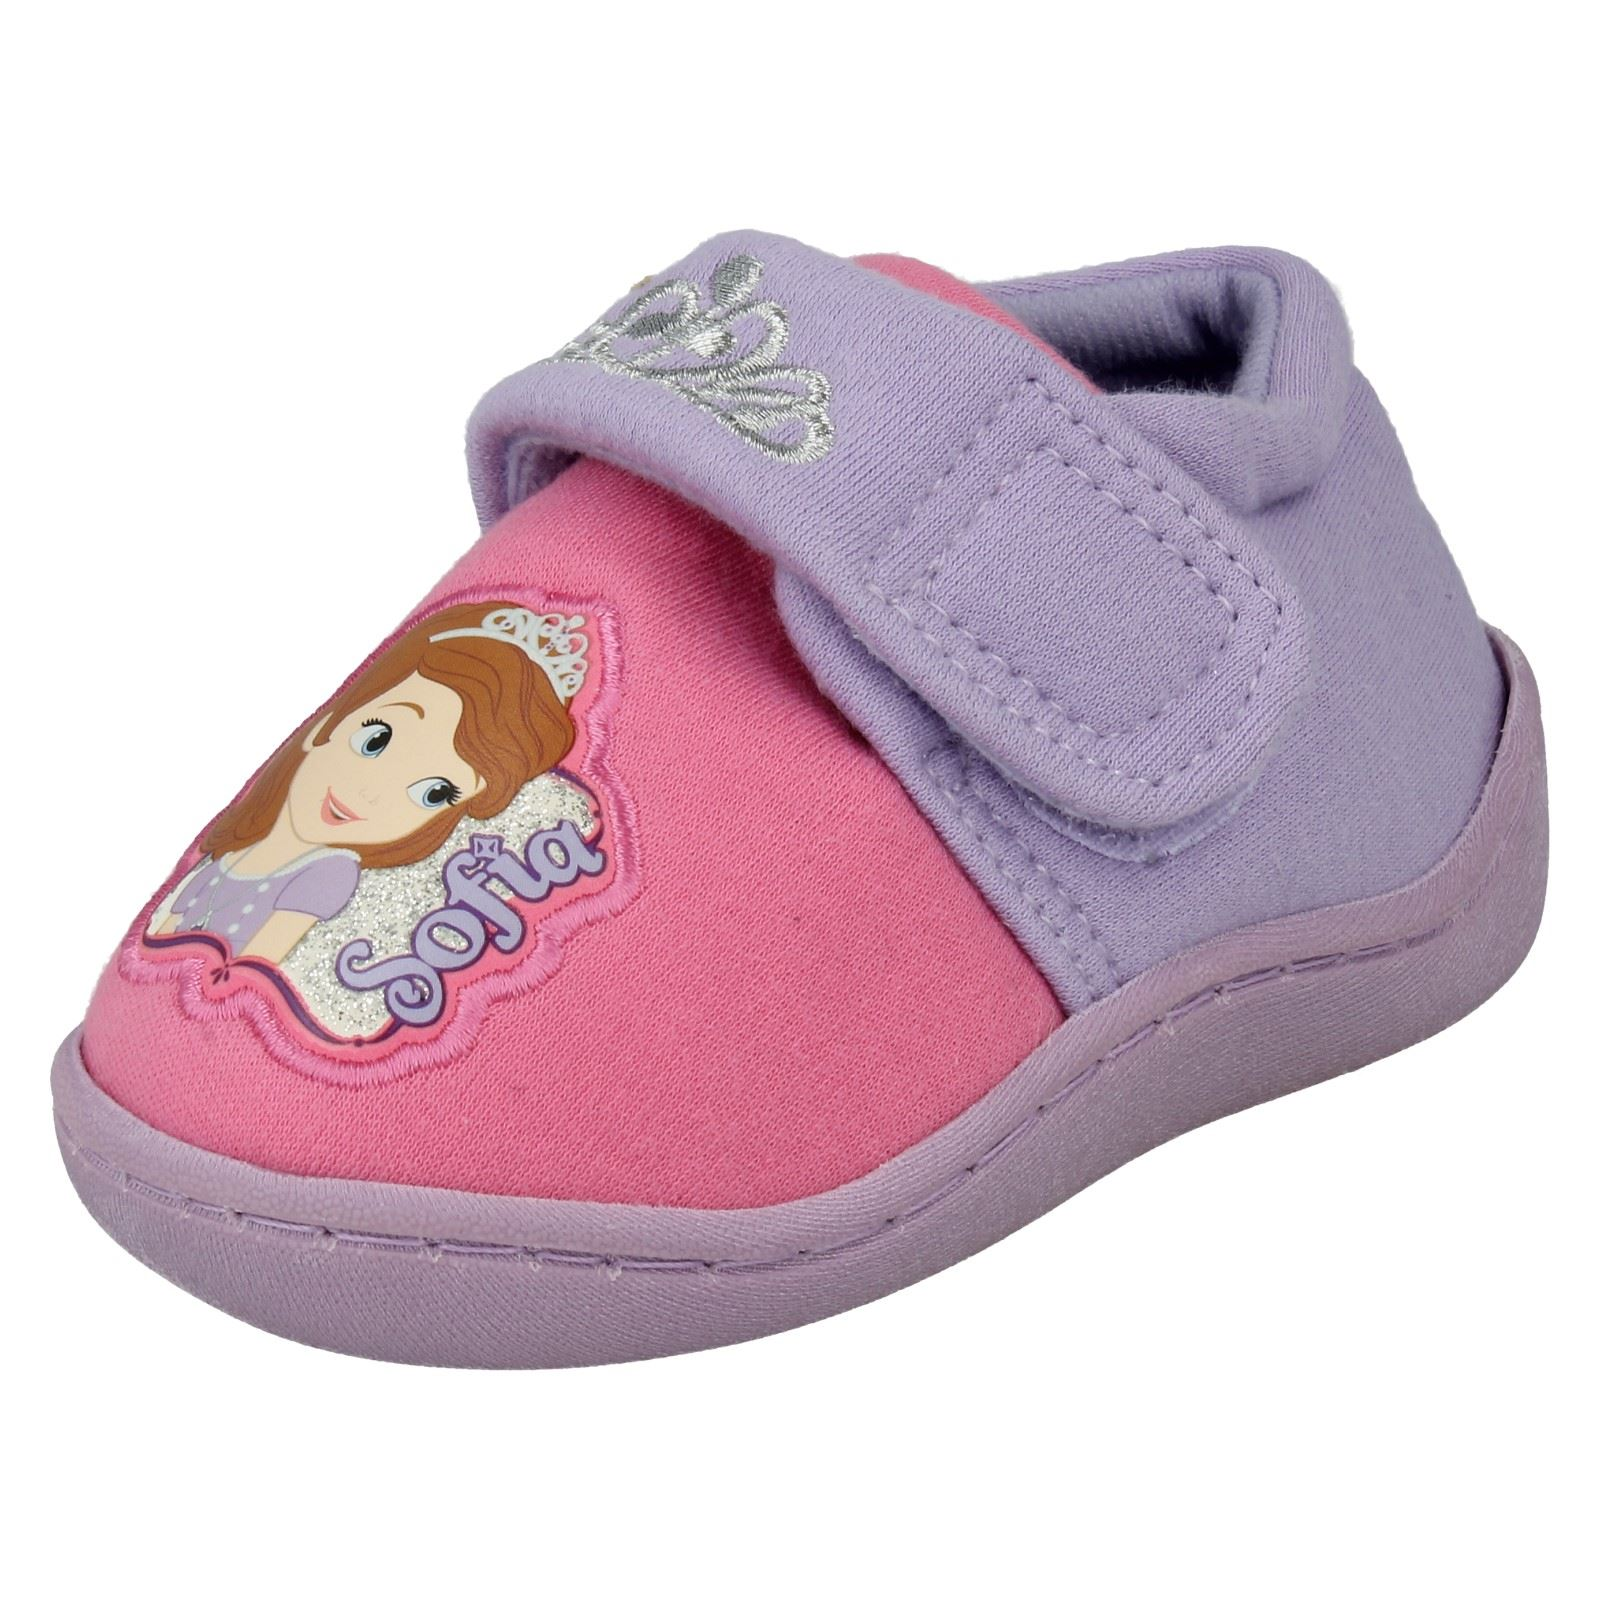 Girls Disney Slippers The Style - Sofia Crown Side